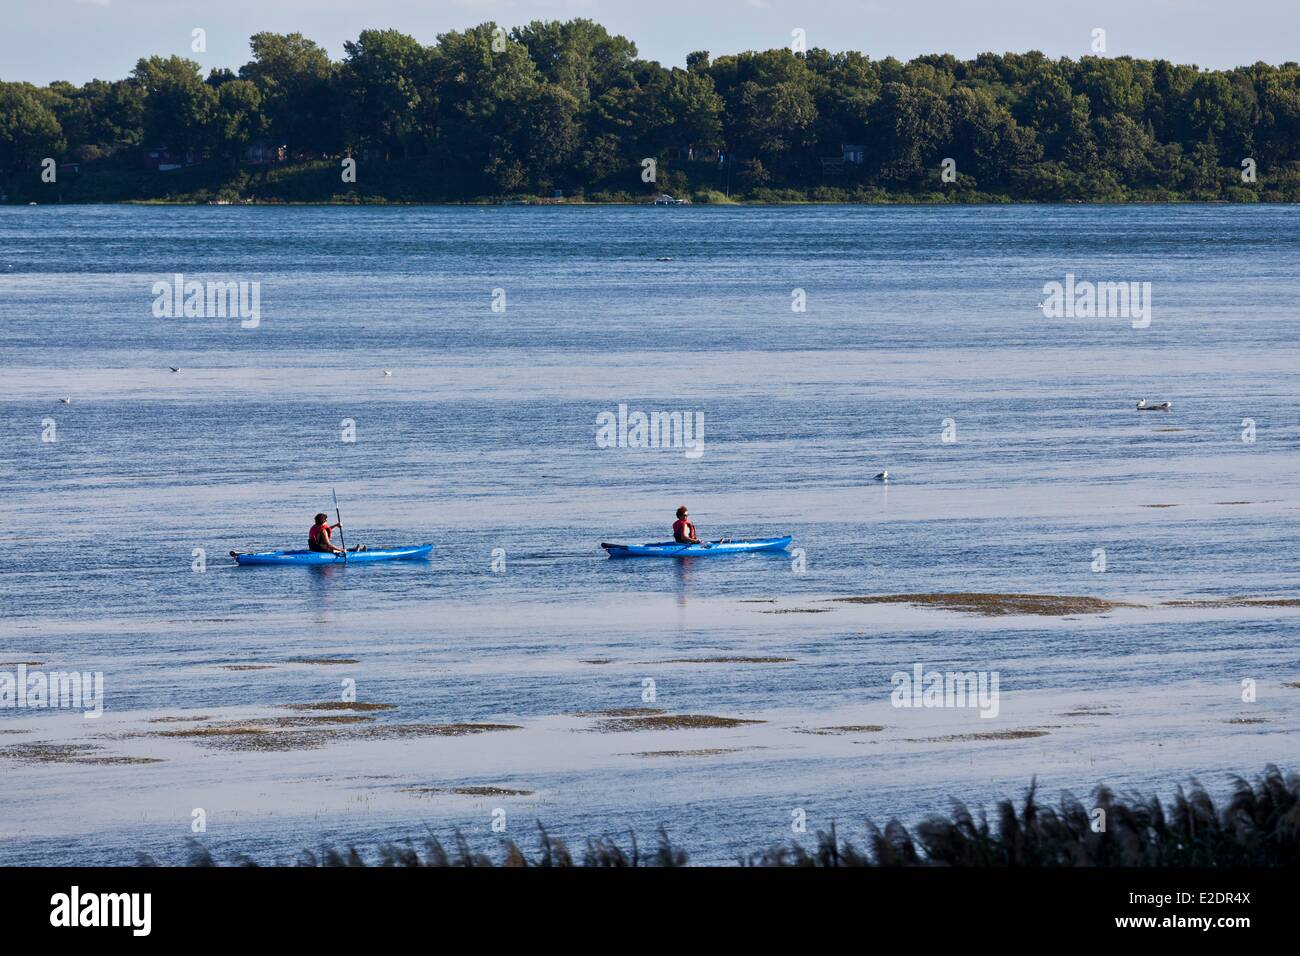 Canada Quebec province Montreal kayaking on the St. Lawrence River - Stock Image